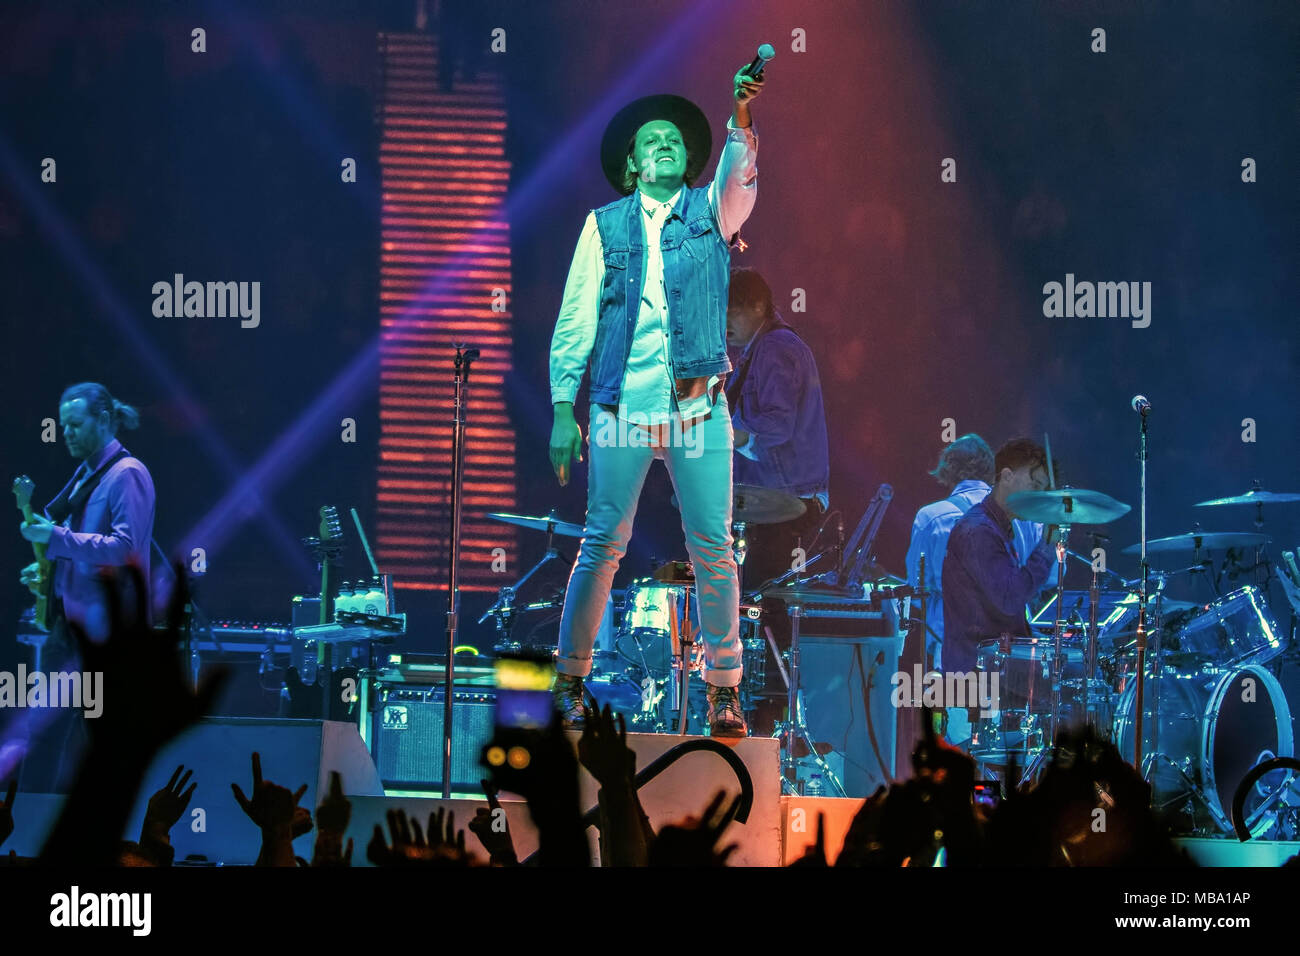 Manchester, UK. 8th Apr, 2018. Canadian indie rock band Arcade Fire ...